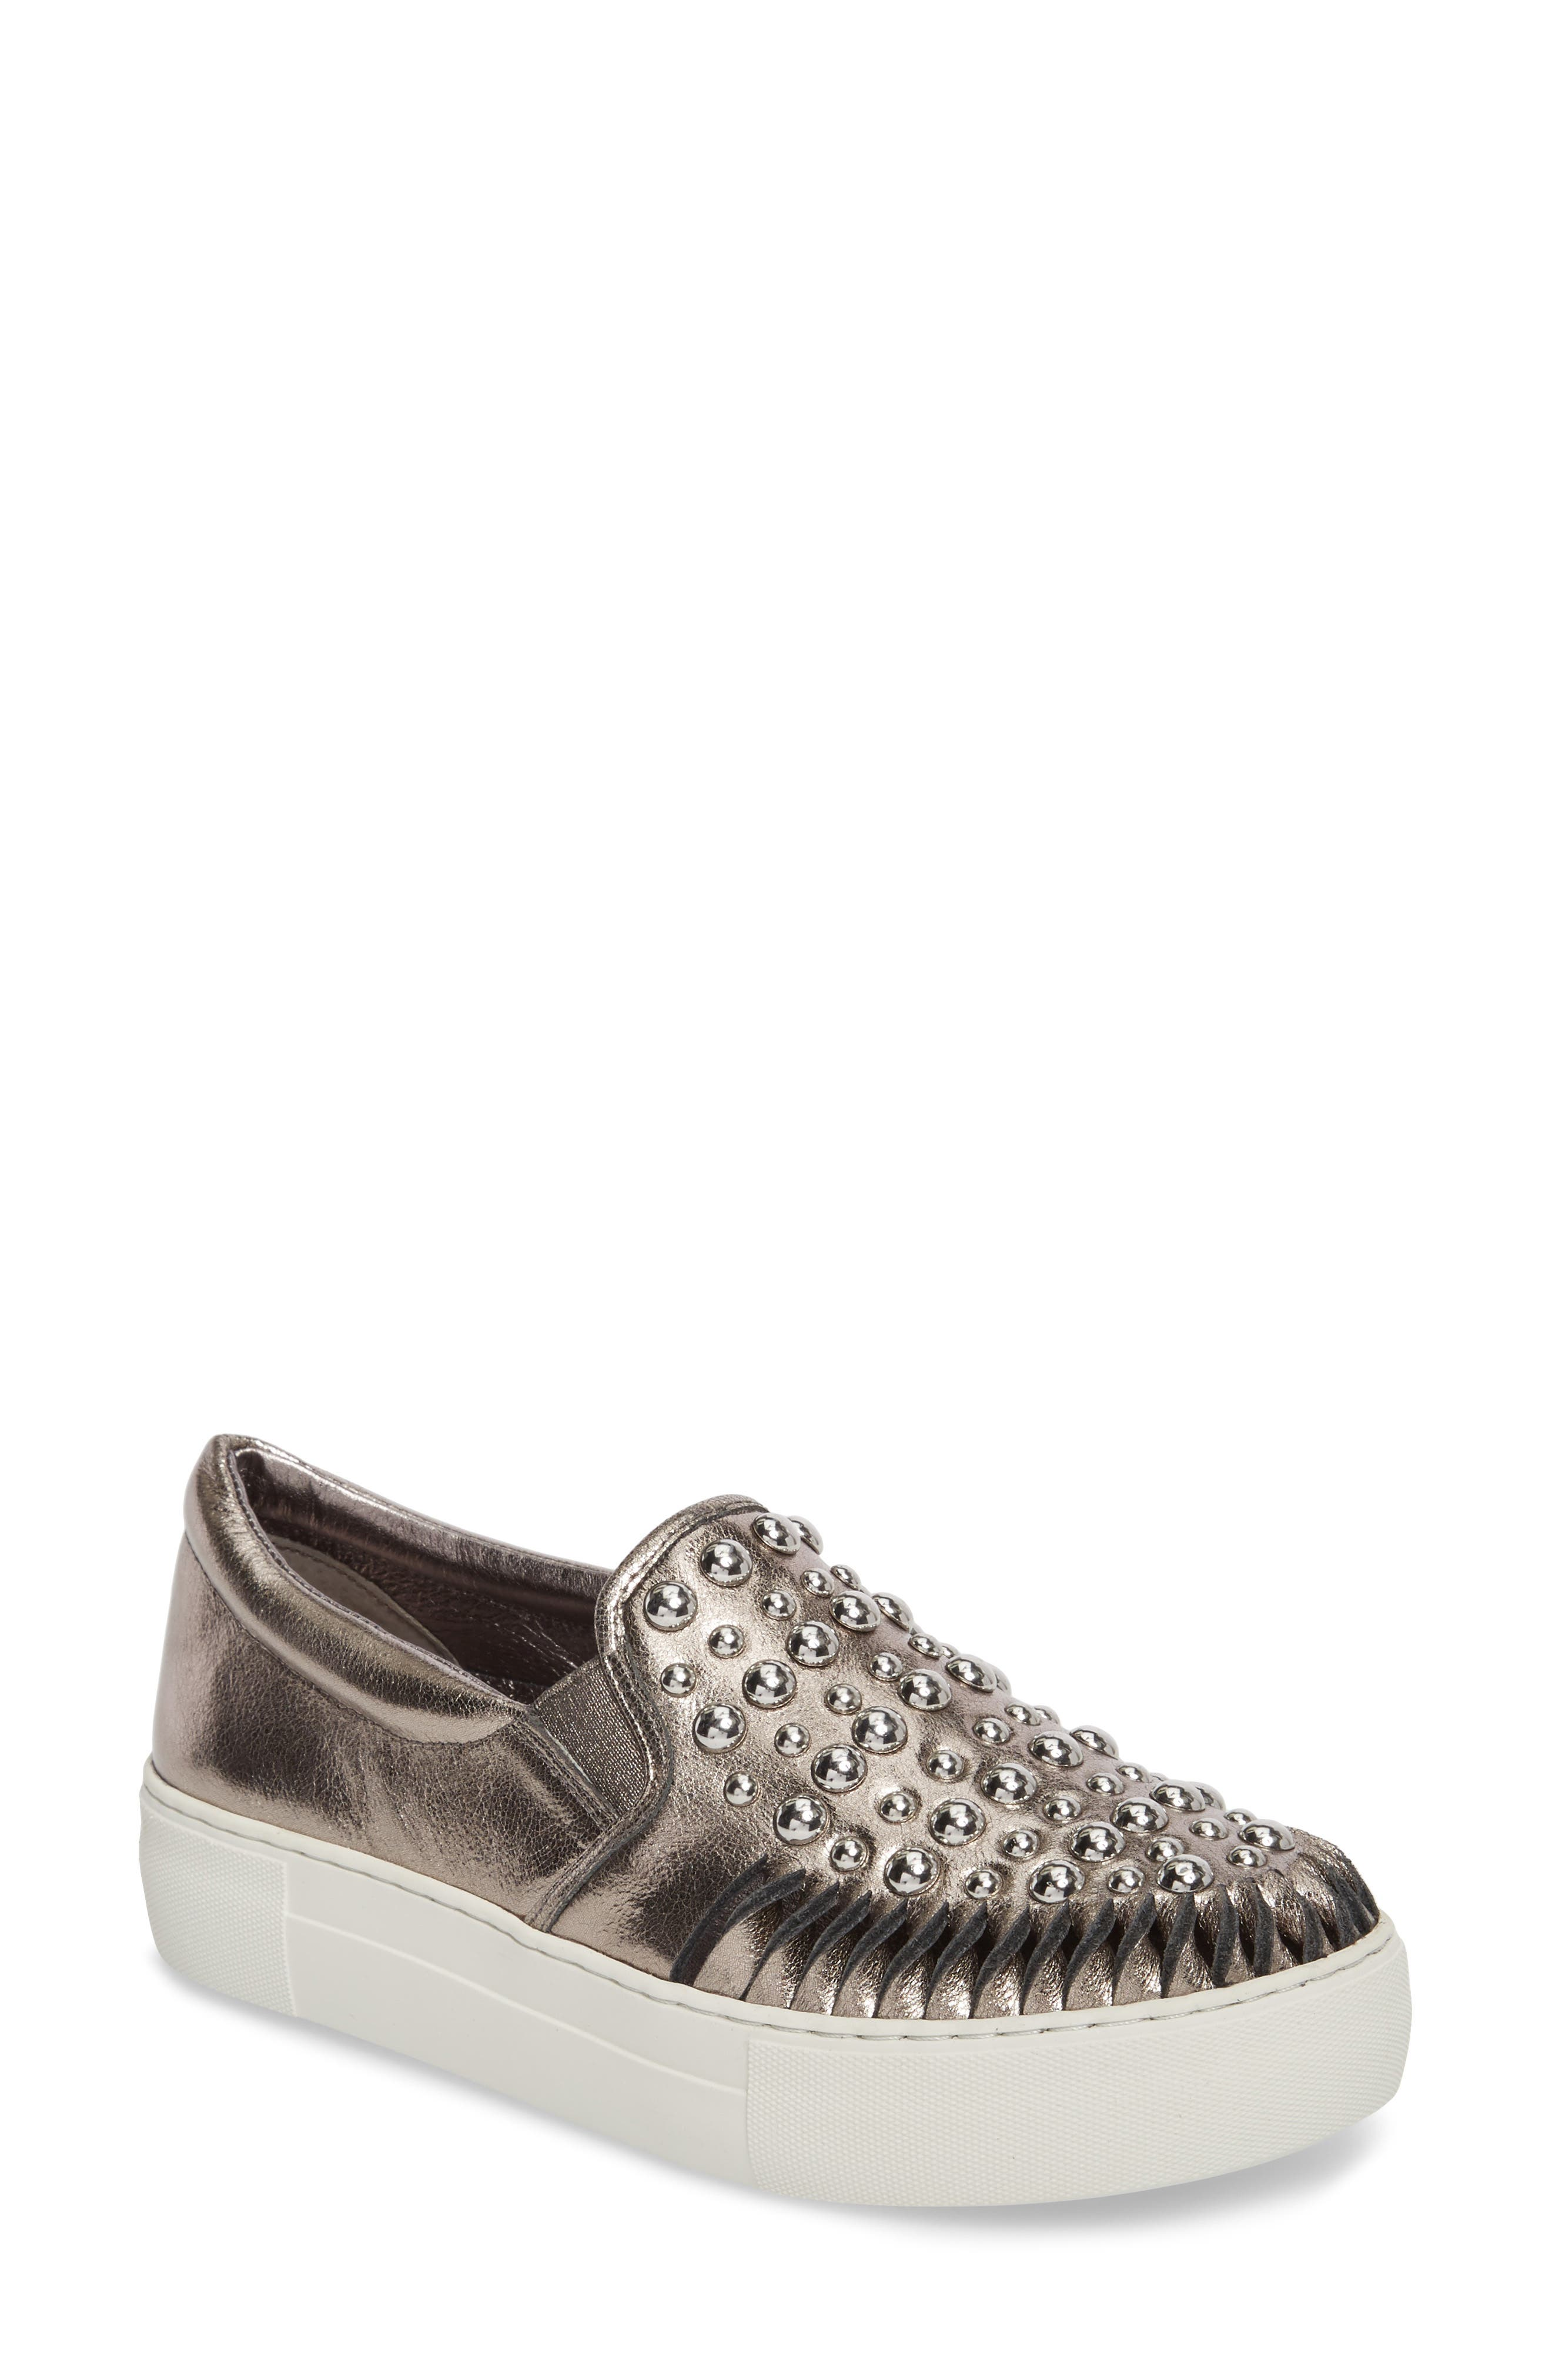 AZT Studded Slip-On Sneaker,                         Main,                         color, Pewter Leather